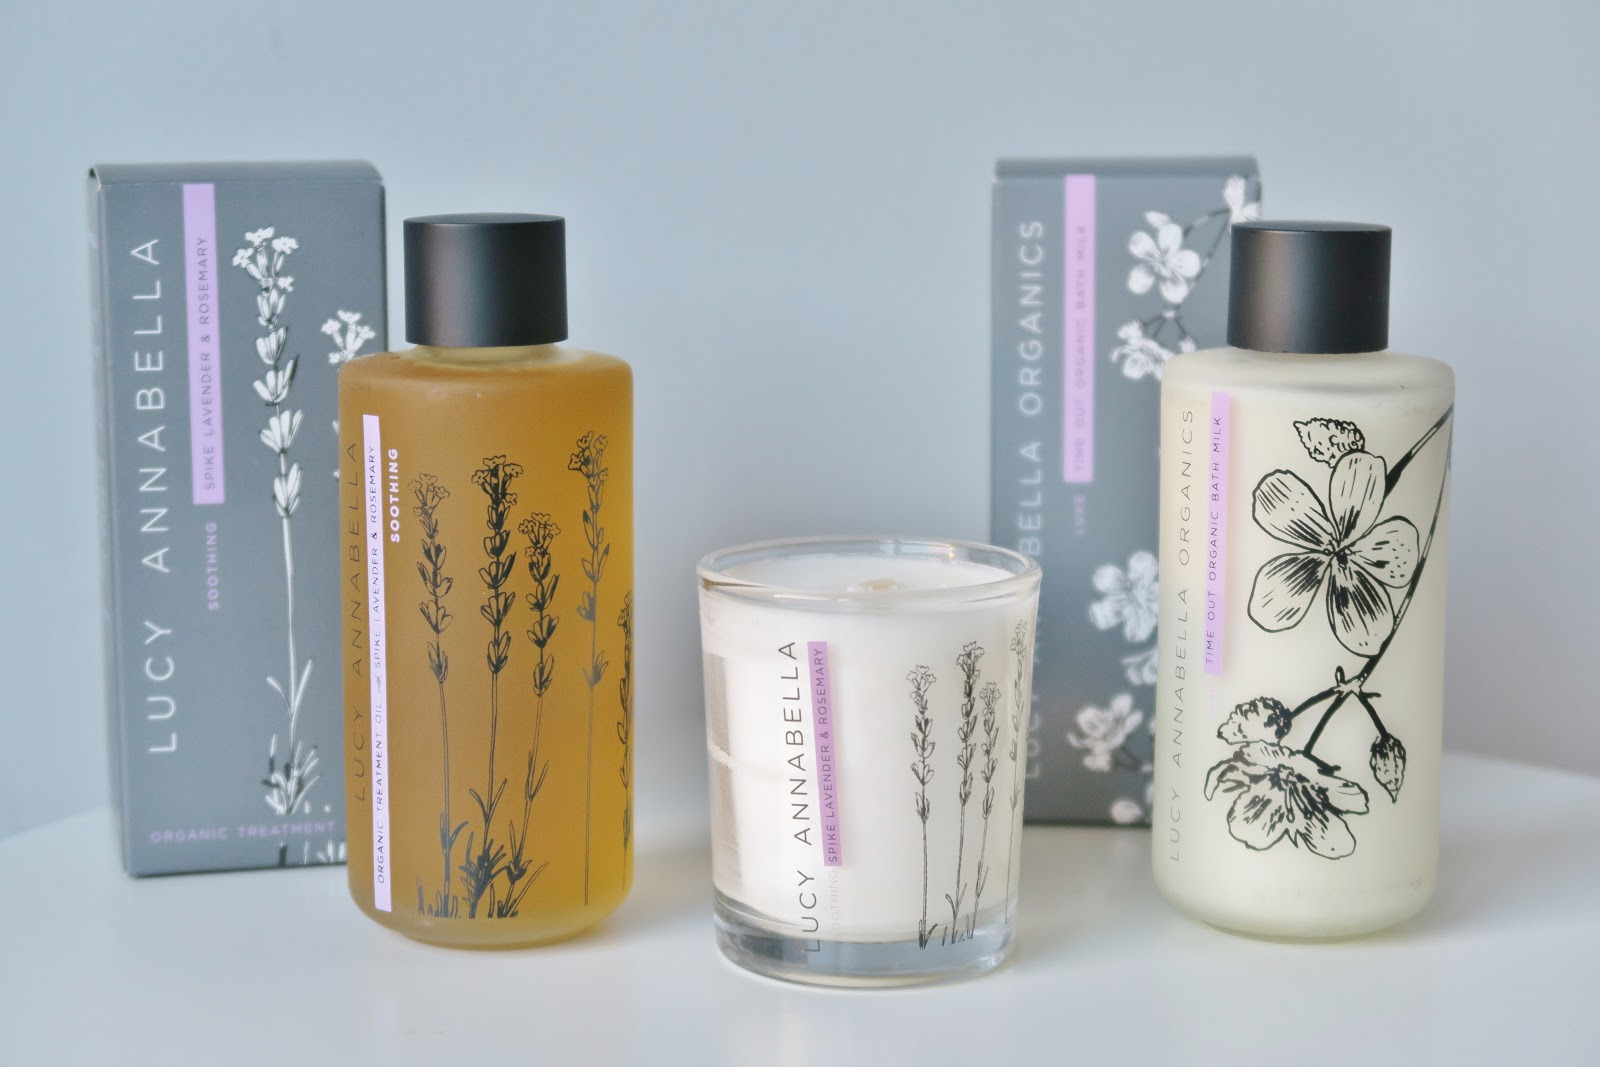 Winter Luxuries, new releases at abeautifulworld | Luxury online natural and organic performance skincare